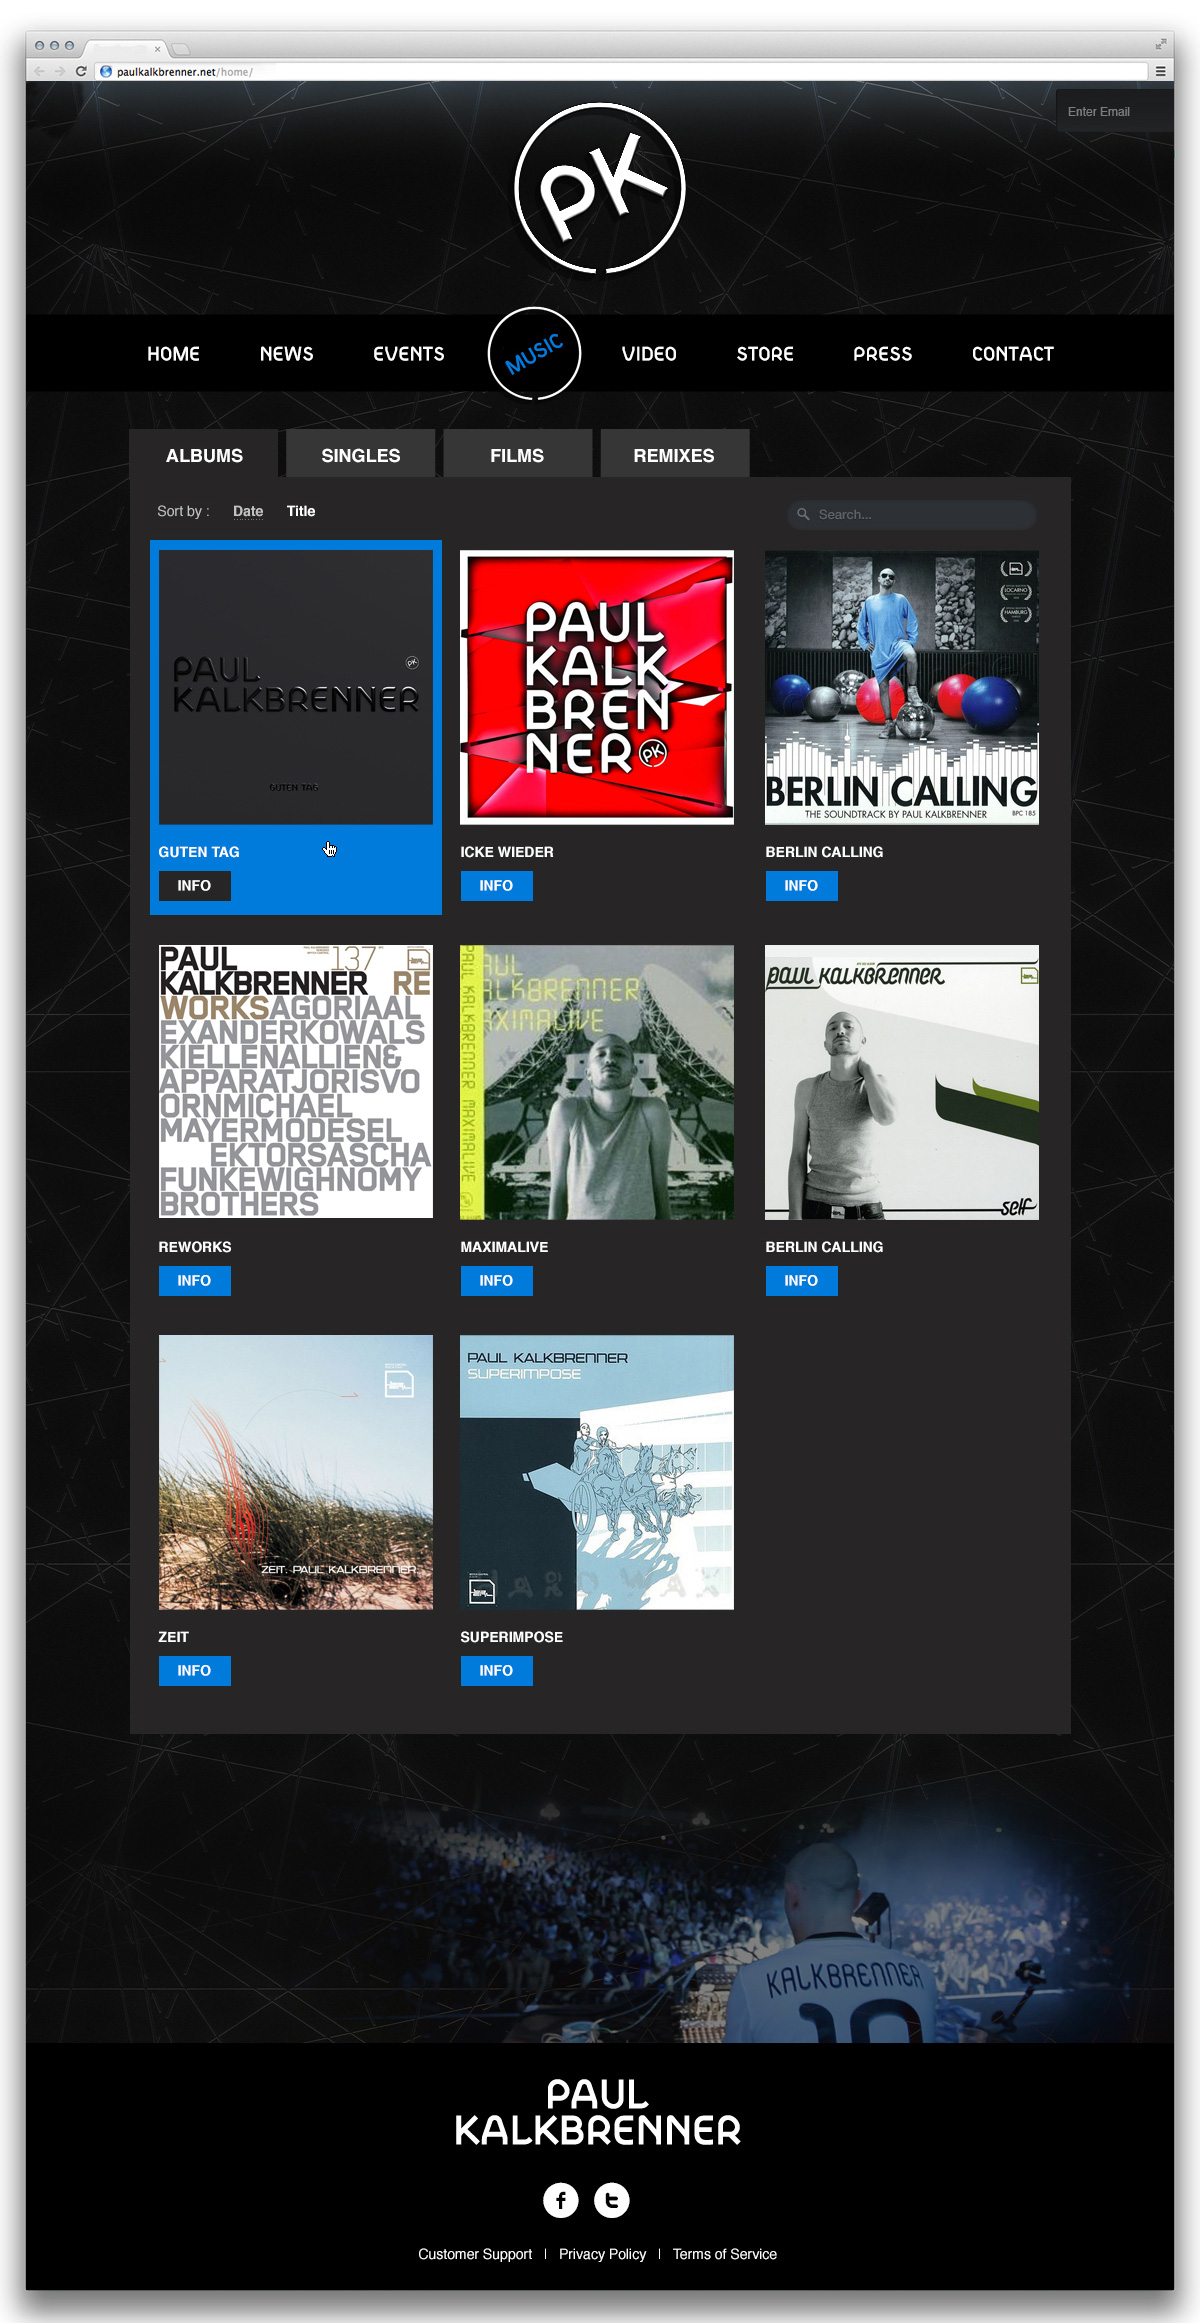 Paul Kalkbrenner home page